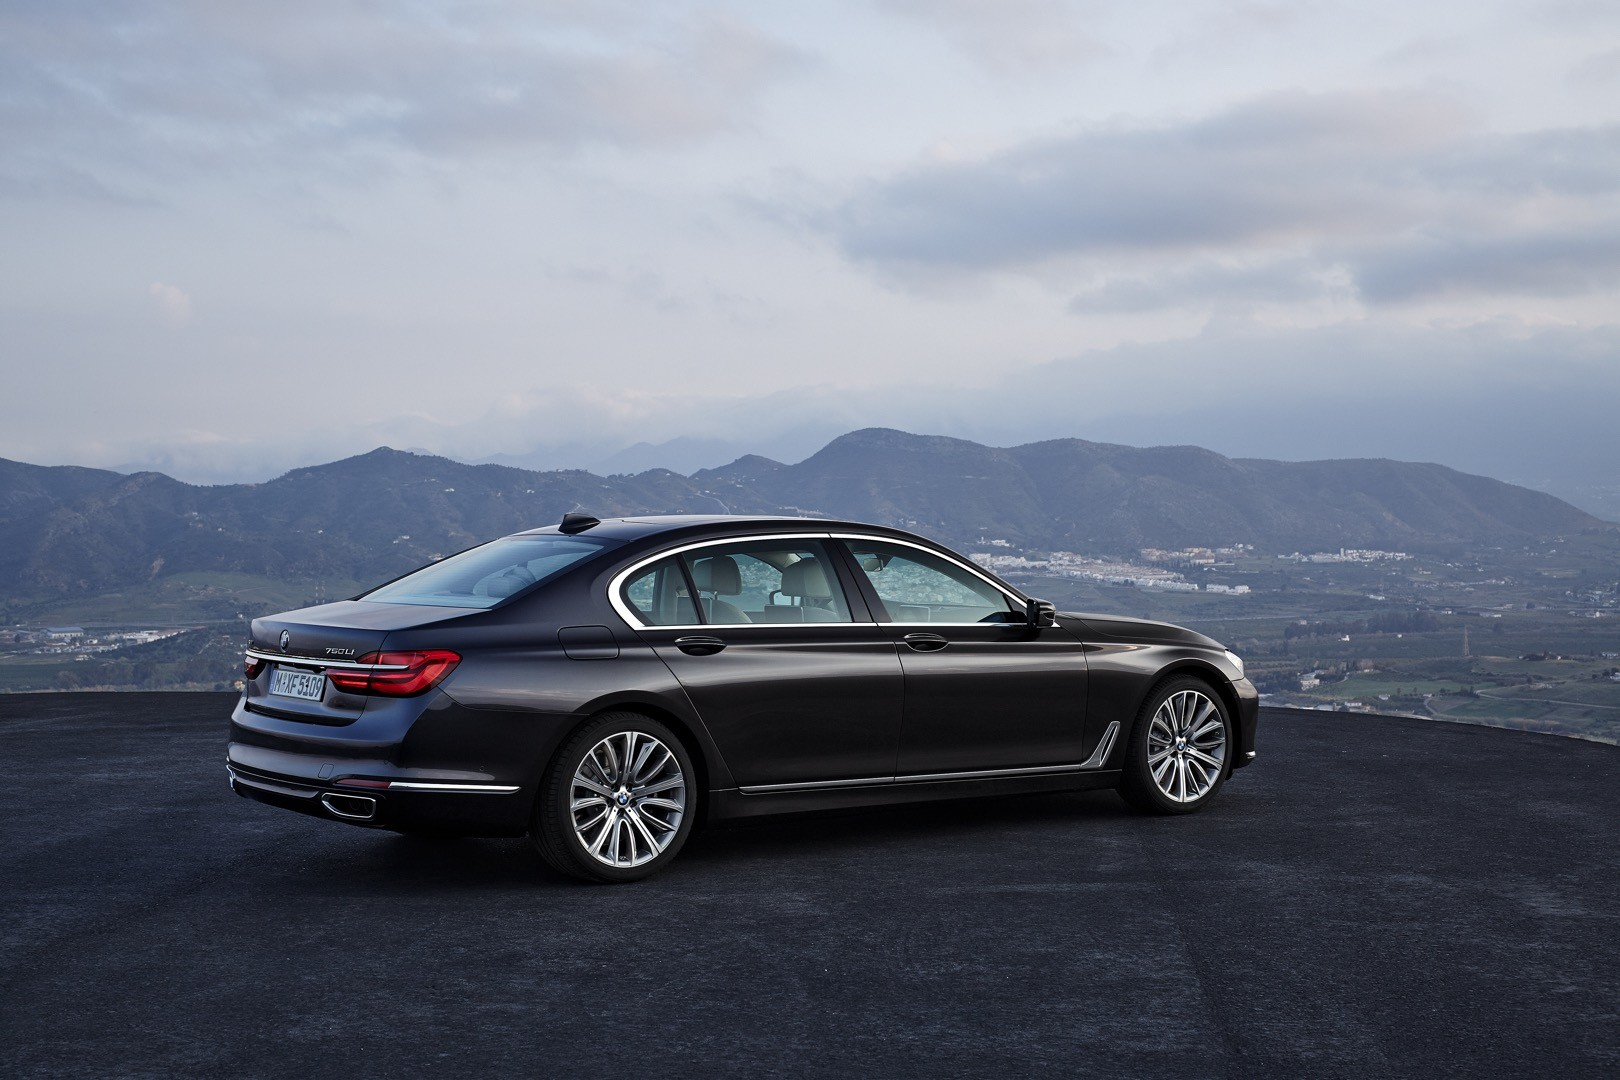 2016-bmw-7-series-finally-officially-unveiled-the-good-stuffs-inside-photo-gallery_15